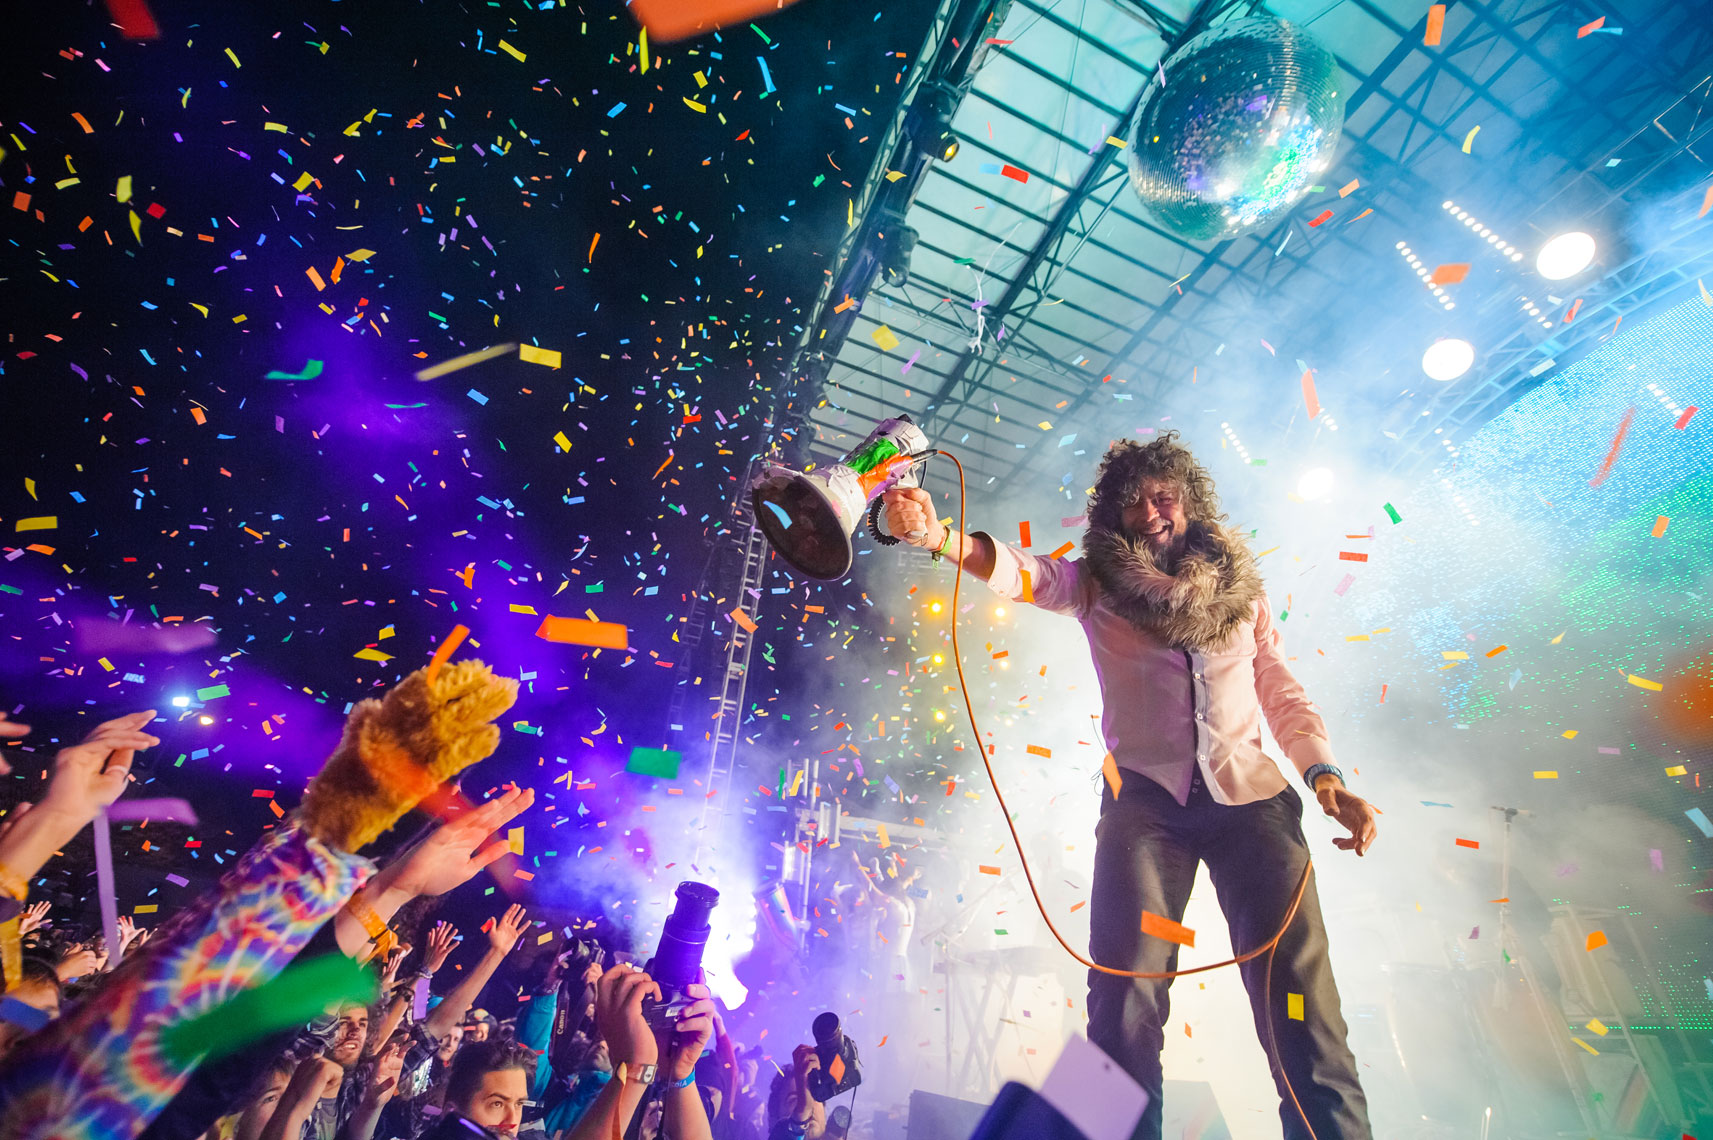 The-Flaming-Lips-play-the-Animoog-Playground-at-Moogfest-on-Saturday,-October-29,-2011